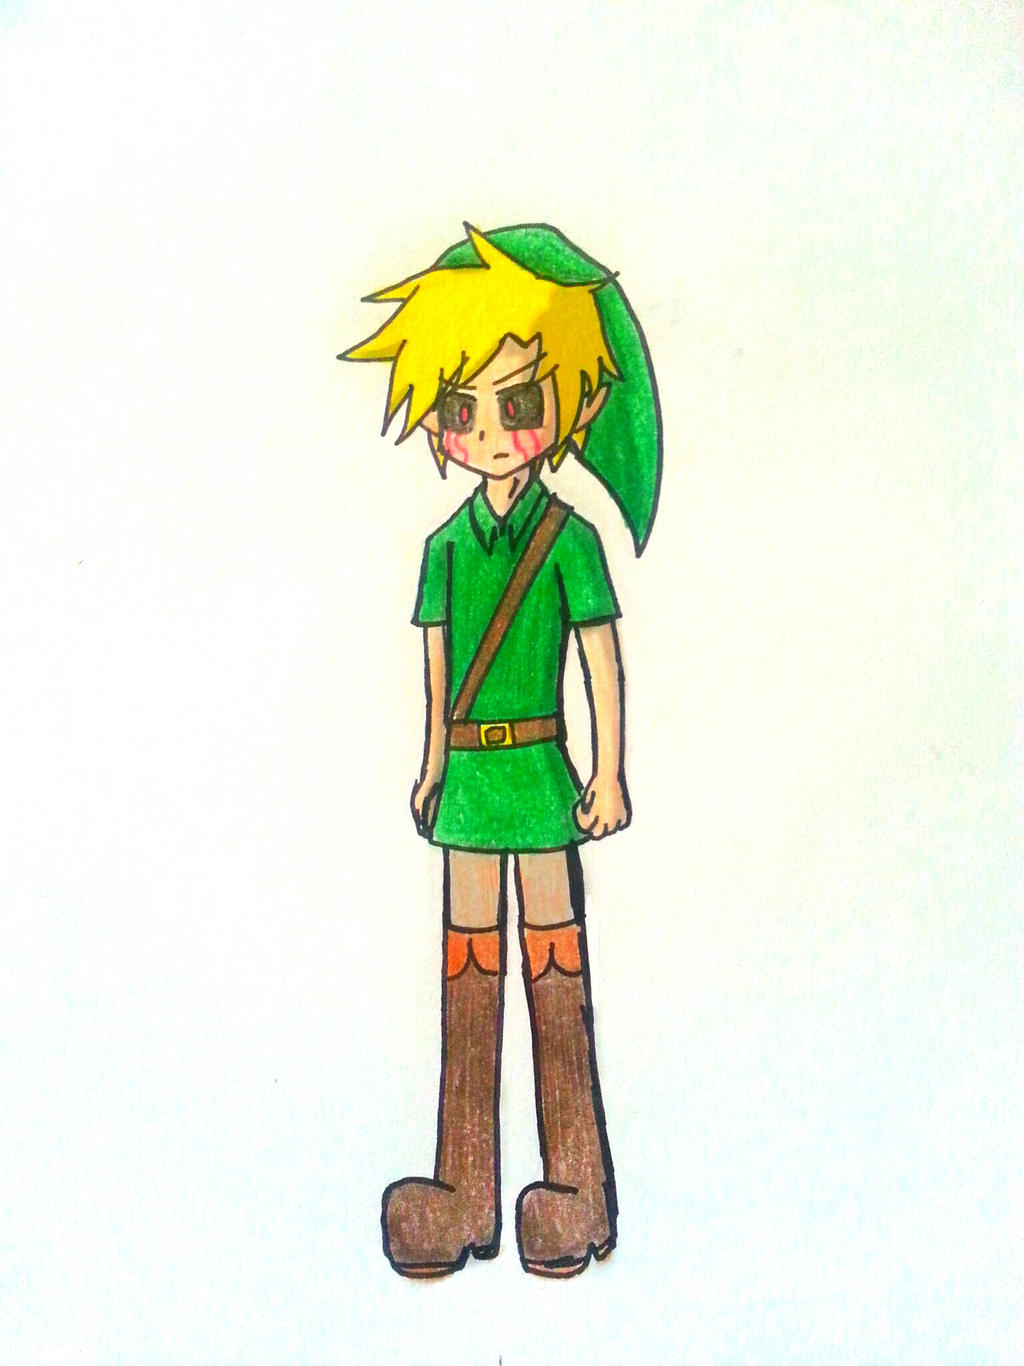 BEN Drowned by Randompikaturtle